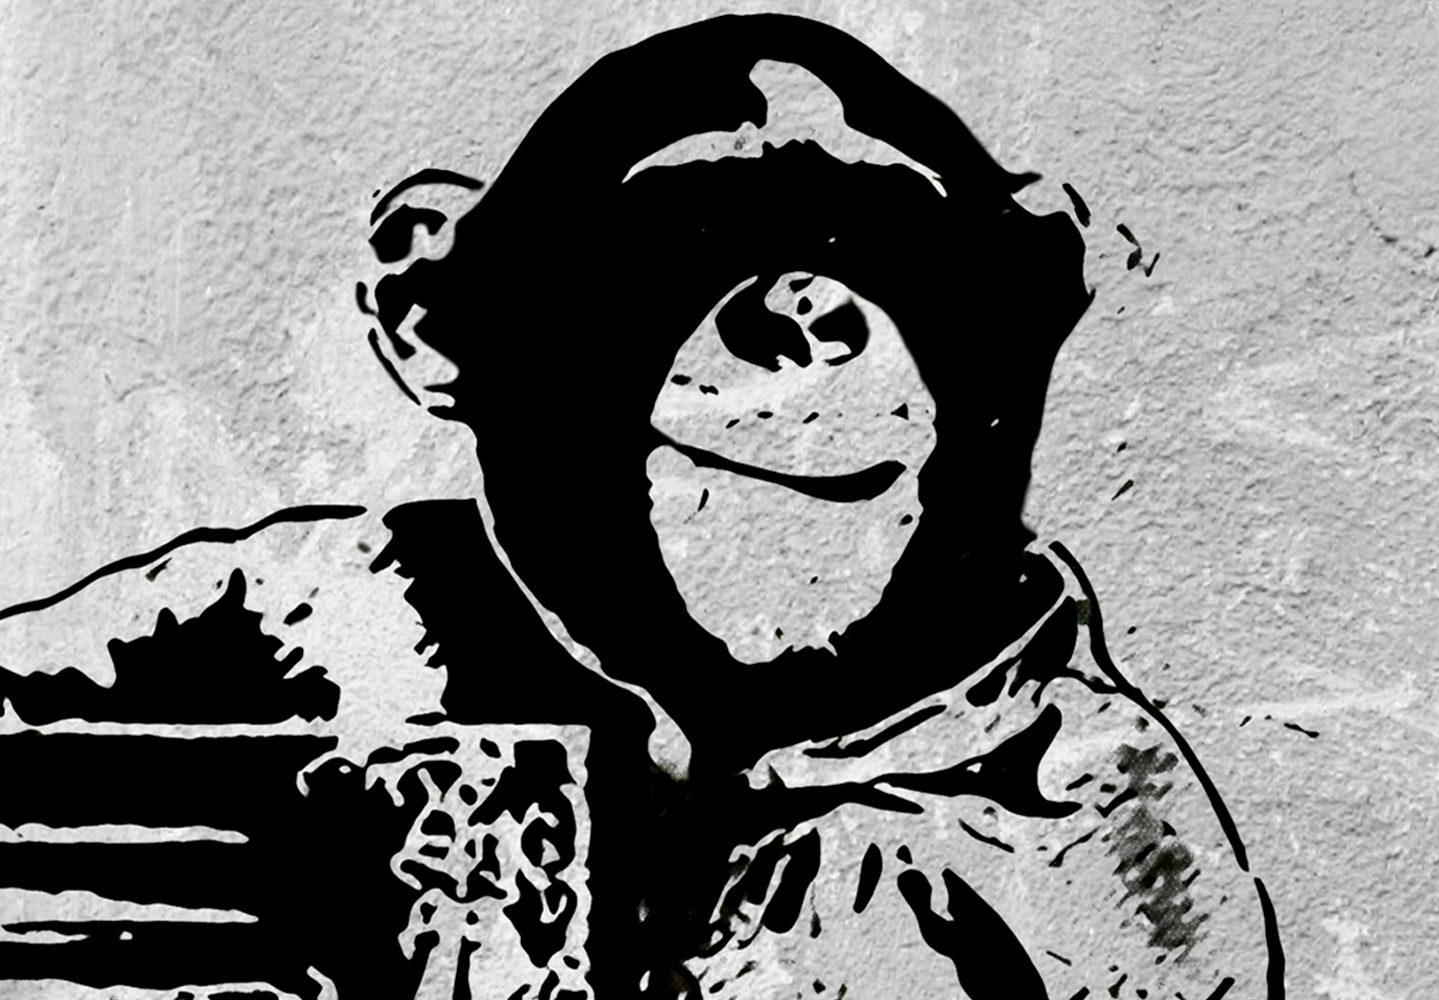 Canvas Print Banksy Framed Wall Art Picture Photo Image i-C-0104-b-a